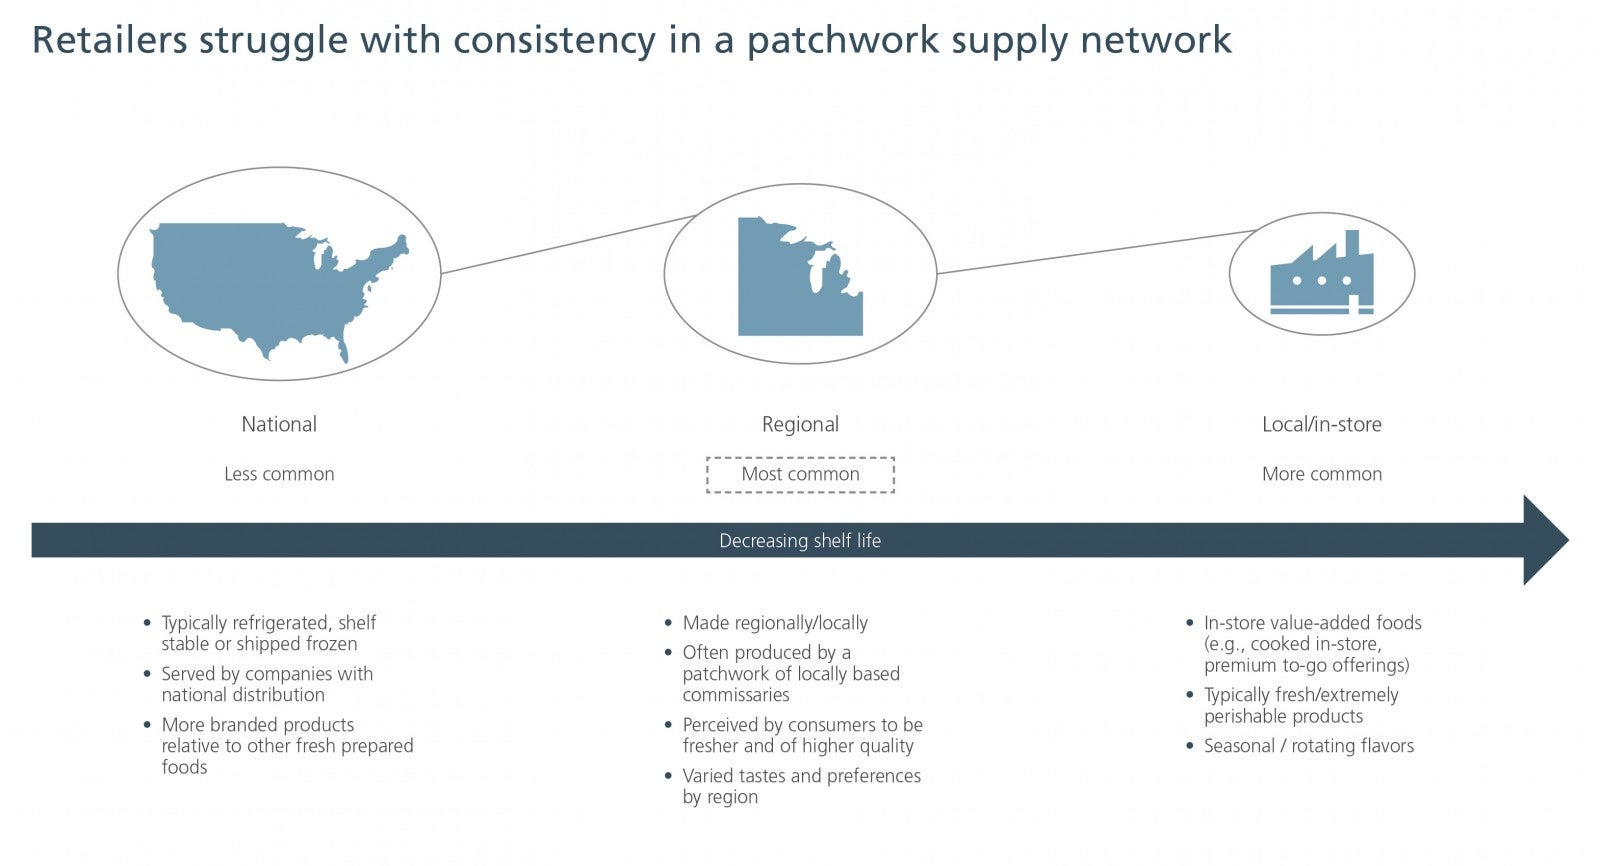 Retailers struggle with consistency in a patchwork supply network